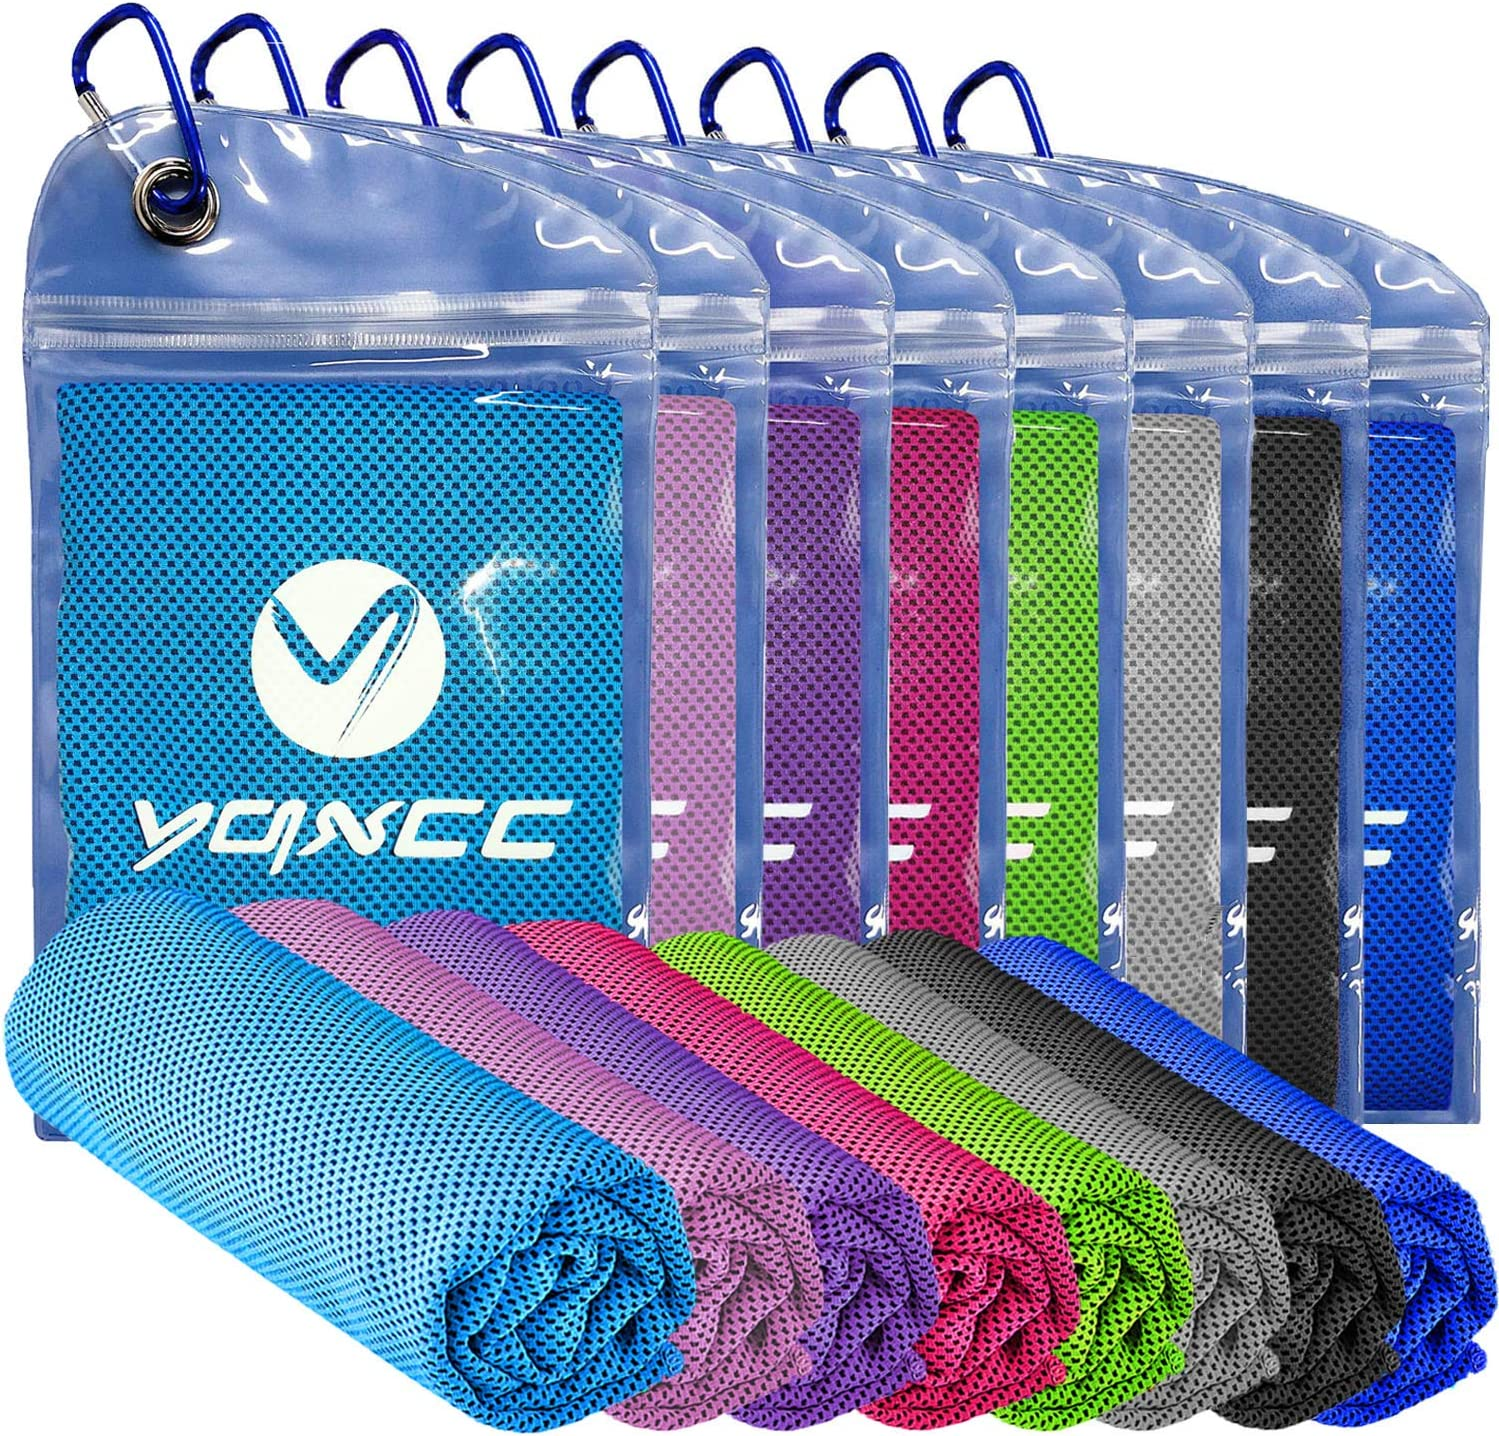 """YQXCC Cooling Towel 4 Packs (47""""x12"""") Microfiber Towel Yoga Towel for Men or Women Ice Cold Towels for Yoga Gym Travel Camping Golf Football & Outdoor Sports (8 Packs Multiple Colors)"""